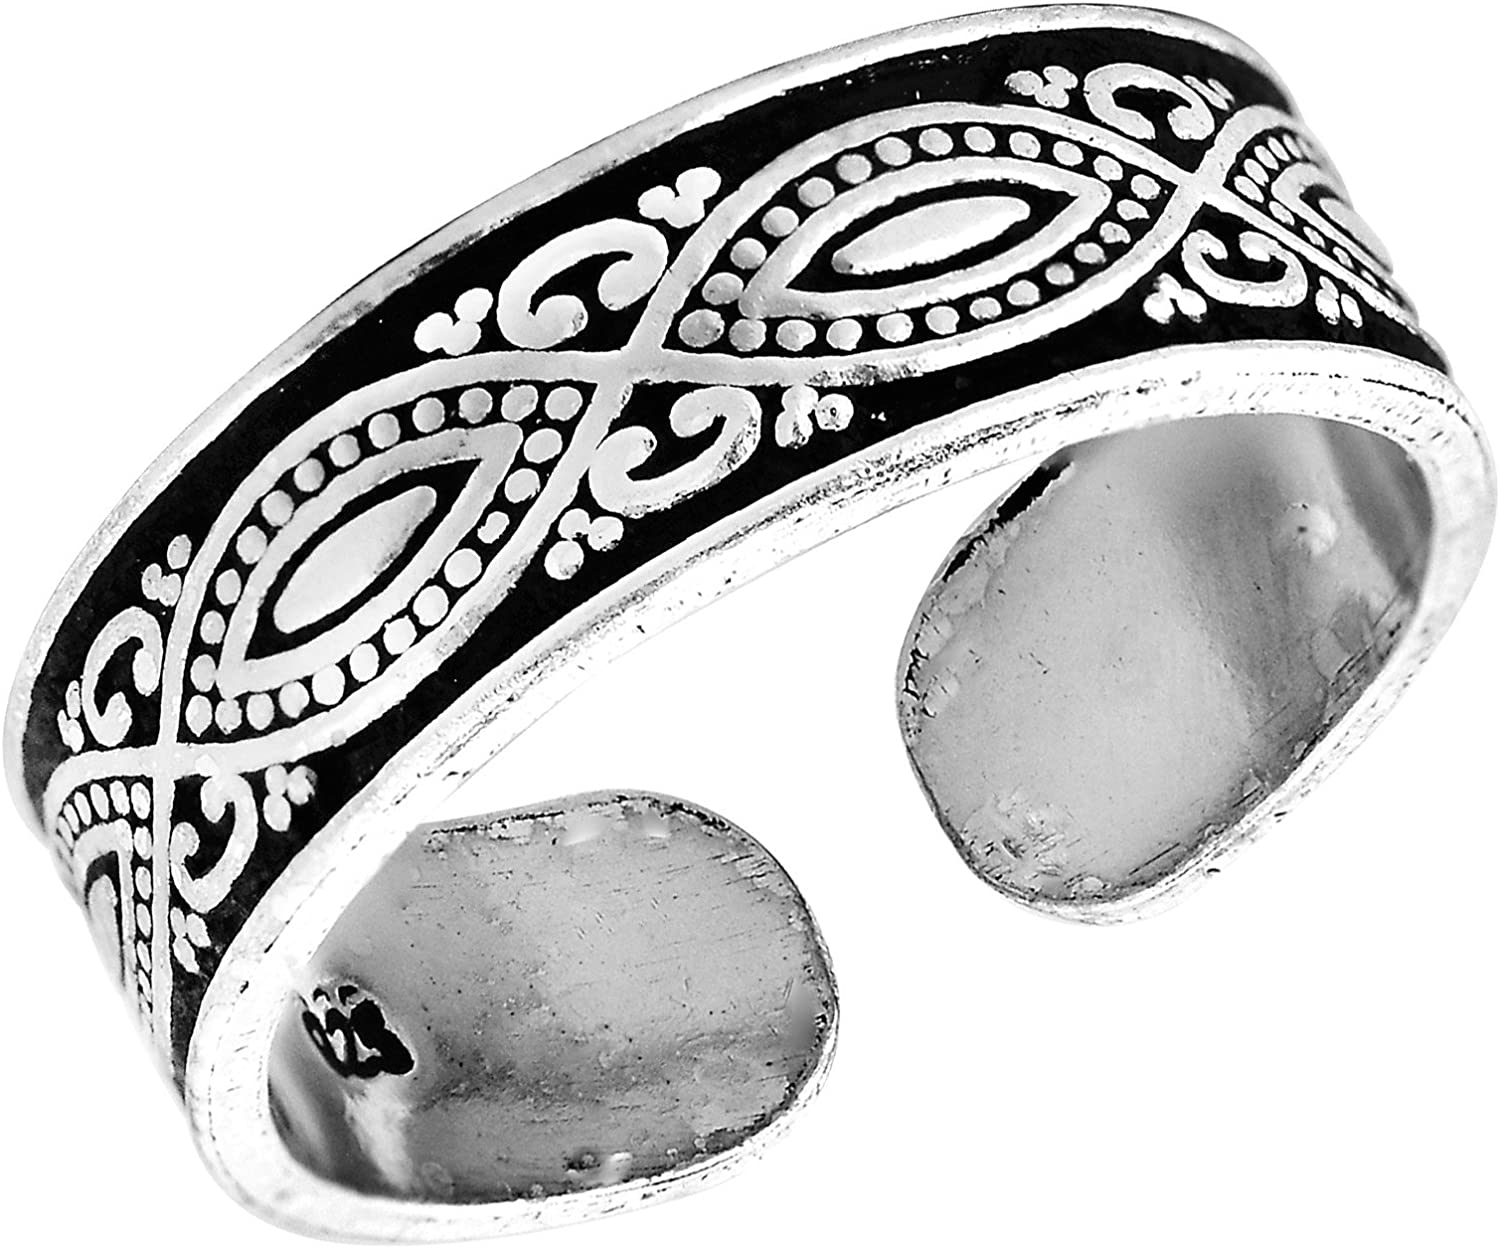 Decorative Balinese Popular brand Marquise Design Credence .925 Silver Sterling Rin Toe